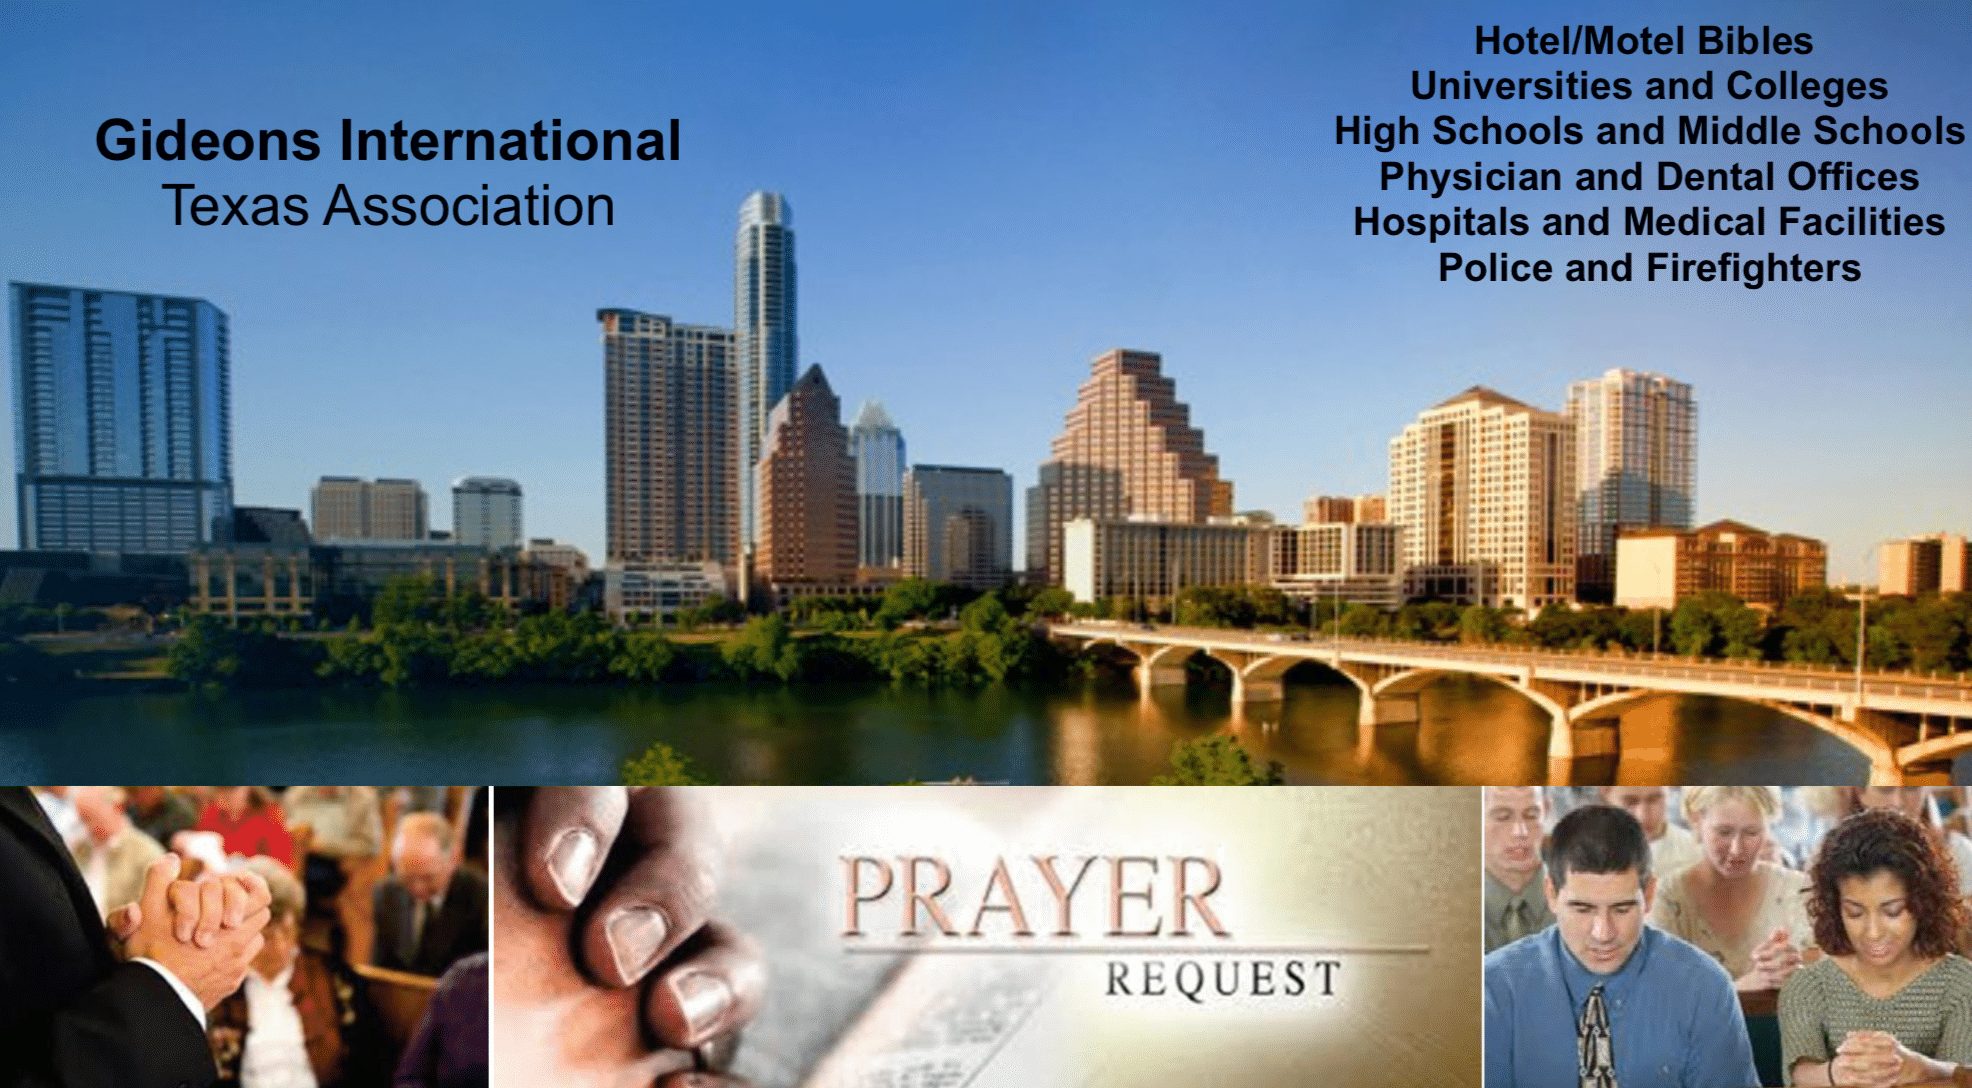 The Mission Fund of Good Shepherd donated $10,000 to Gideons International to help purchase Bibles for the Austin Metro Blitz held on October 27 – 30, 2019. Please join with the Gideons in praying for: A great harvest of new believers in Christ as a result of these Scriptures being distributed to hotels, motels, hospitals, and medical facilities Those who come to Christ through reading God's Word will find an evangelical church where they can grow in the faith College and University students to read and share the Scriptures they received and that the Word of God will impact their lives High school and middle school students to accept and read the Scriptures and to find hope for their future and salvation in Jesus Christ Our God and Savior to receive all the honor, glory, and praise